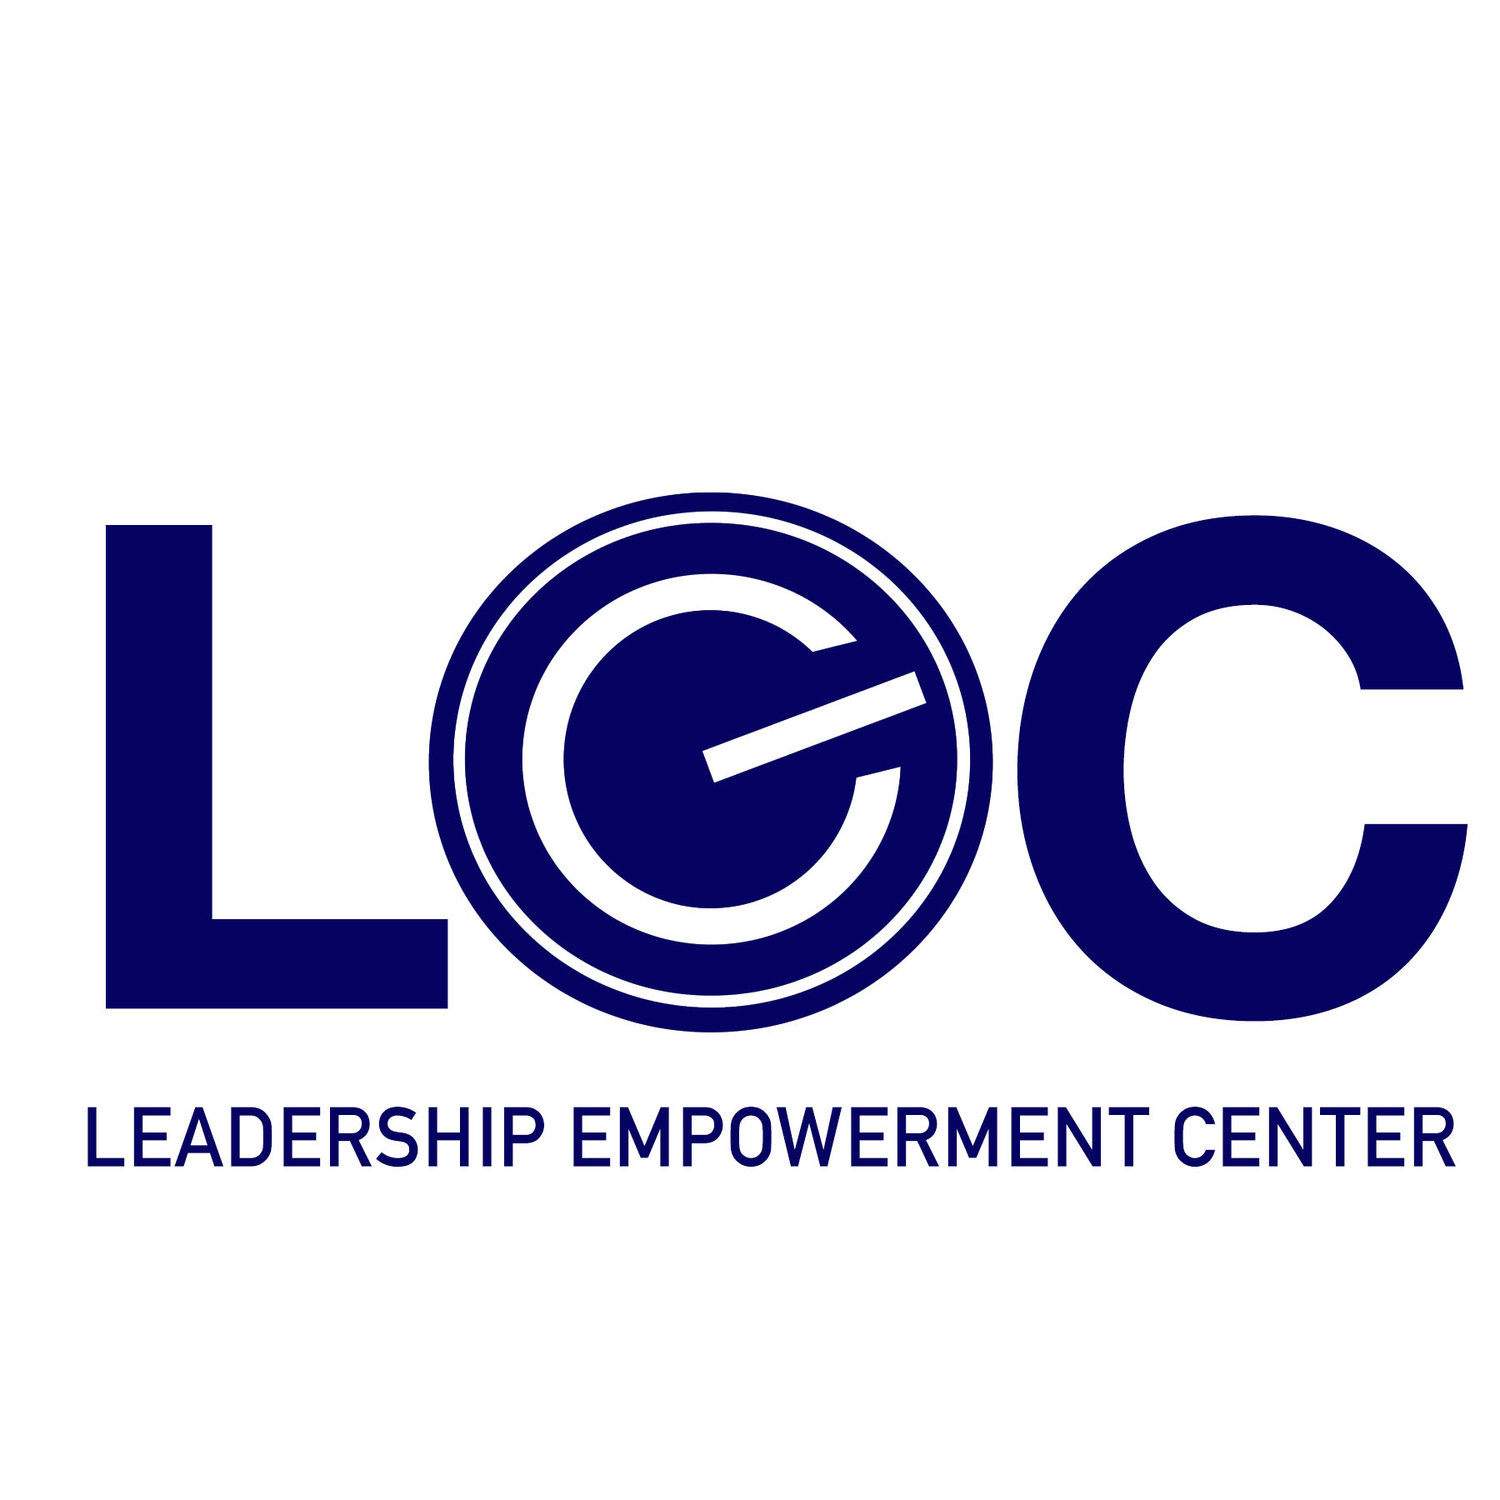 Leadership Empowerment Center